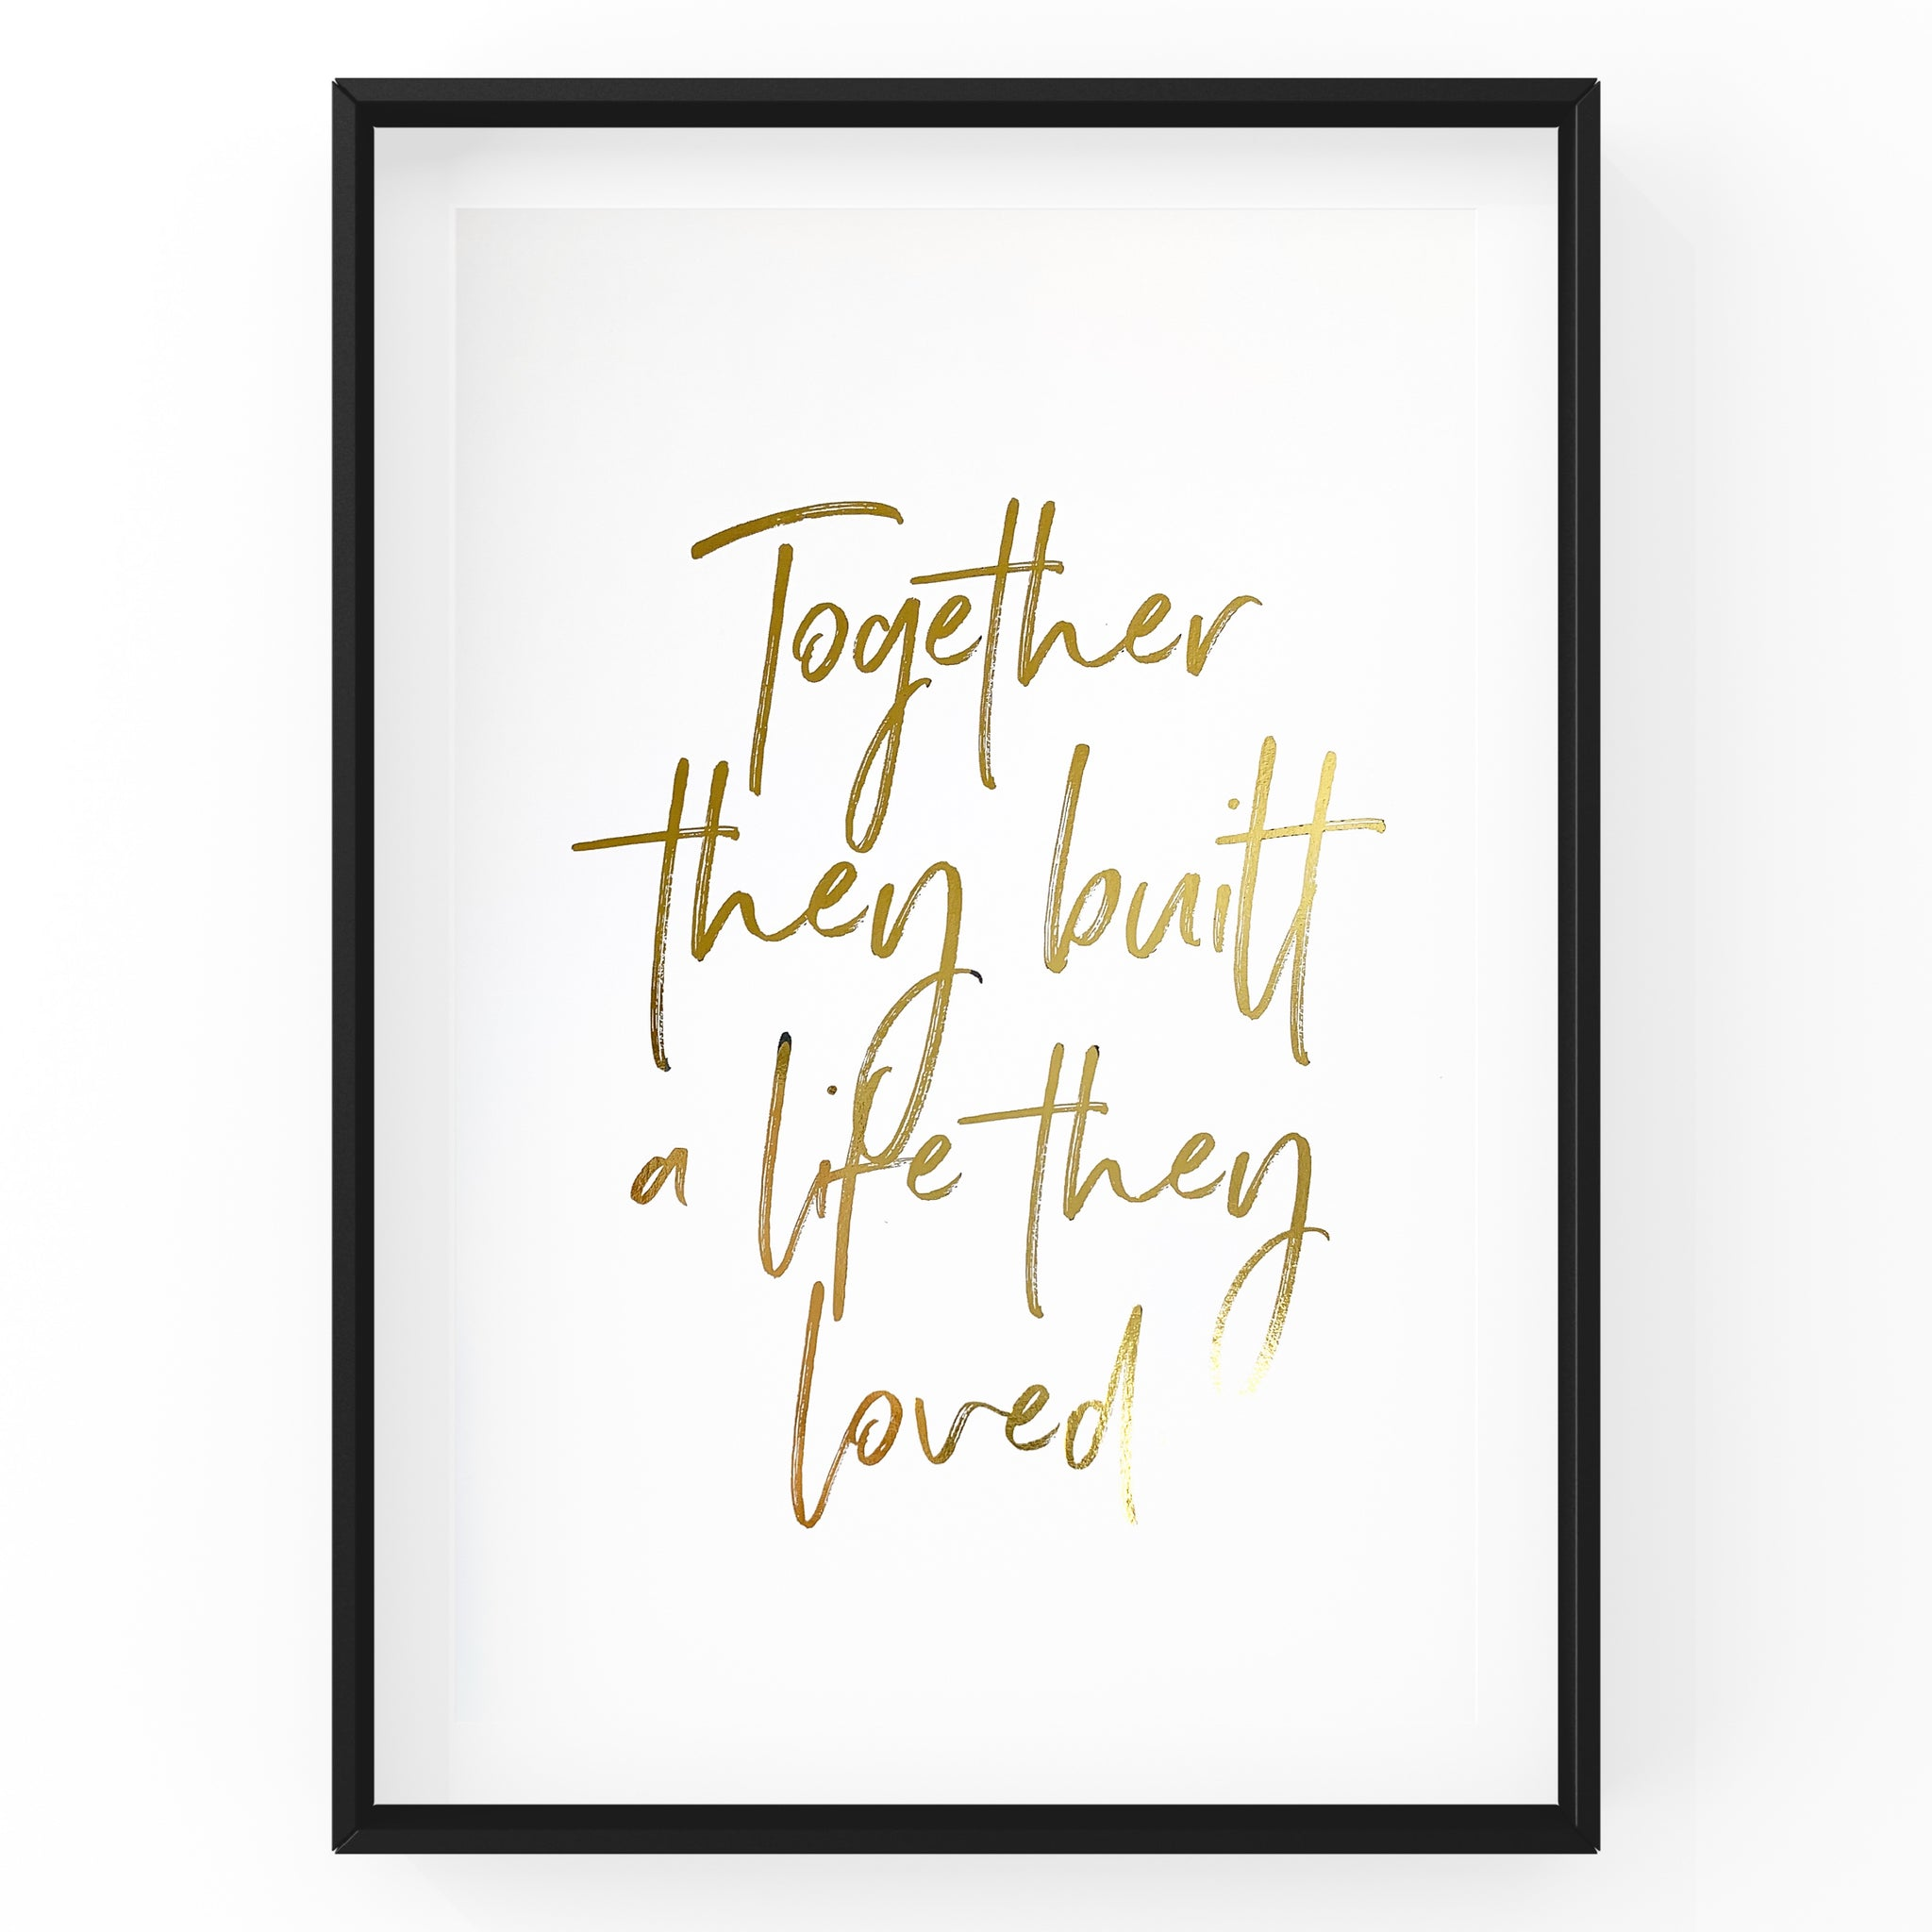 Together They Built A Life they Loved - Foil Print